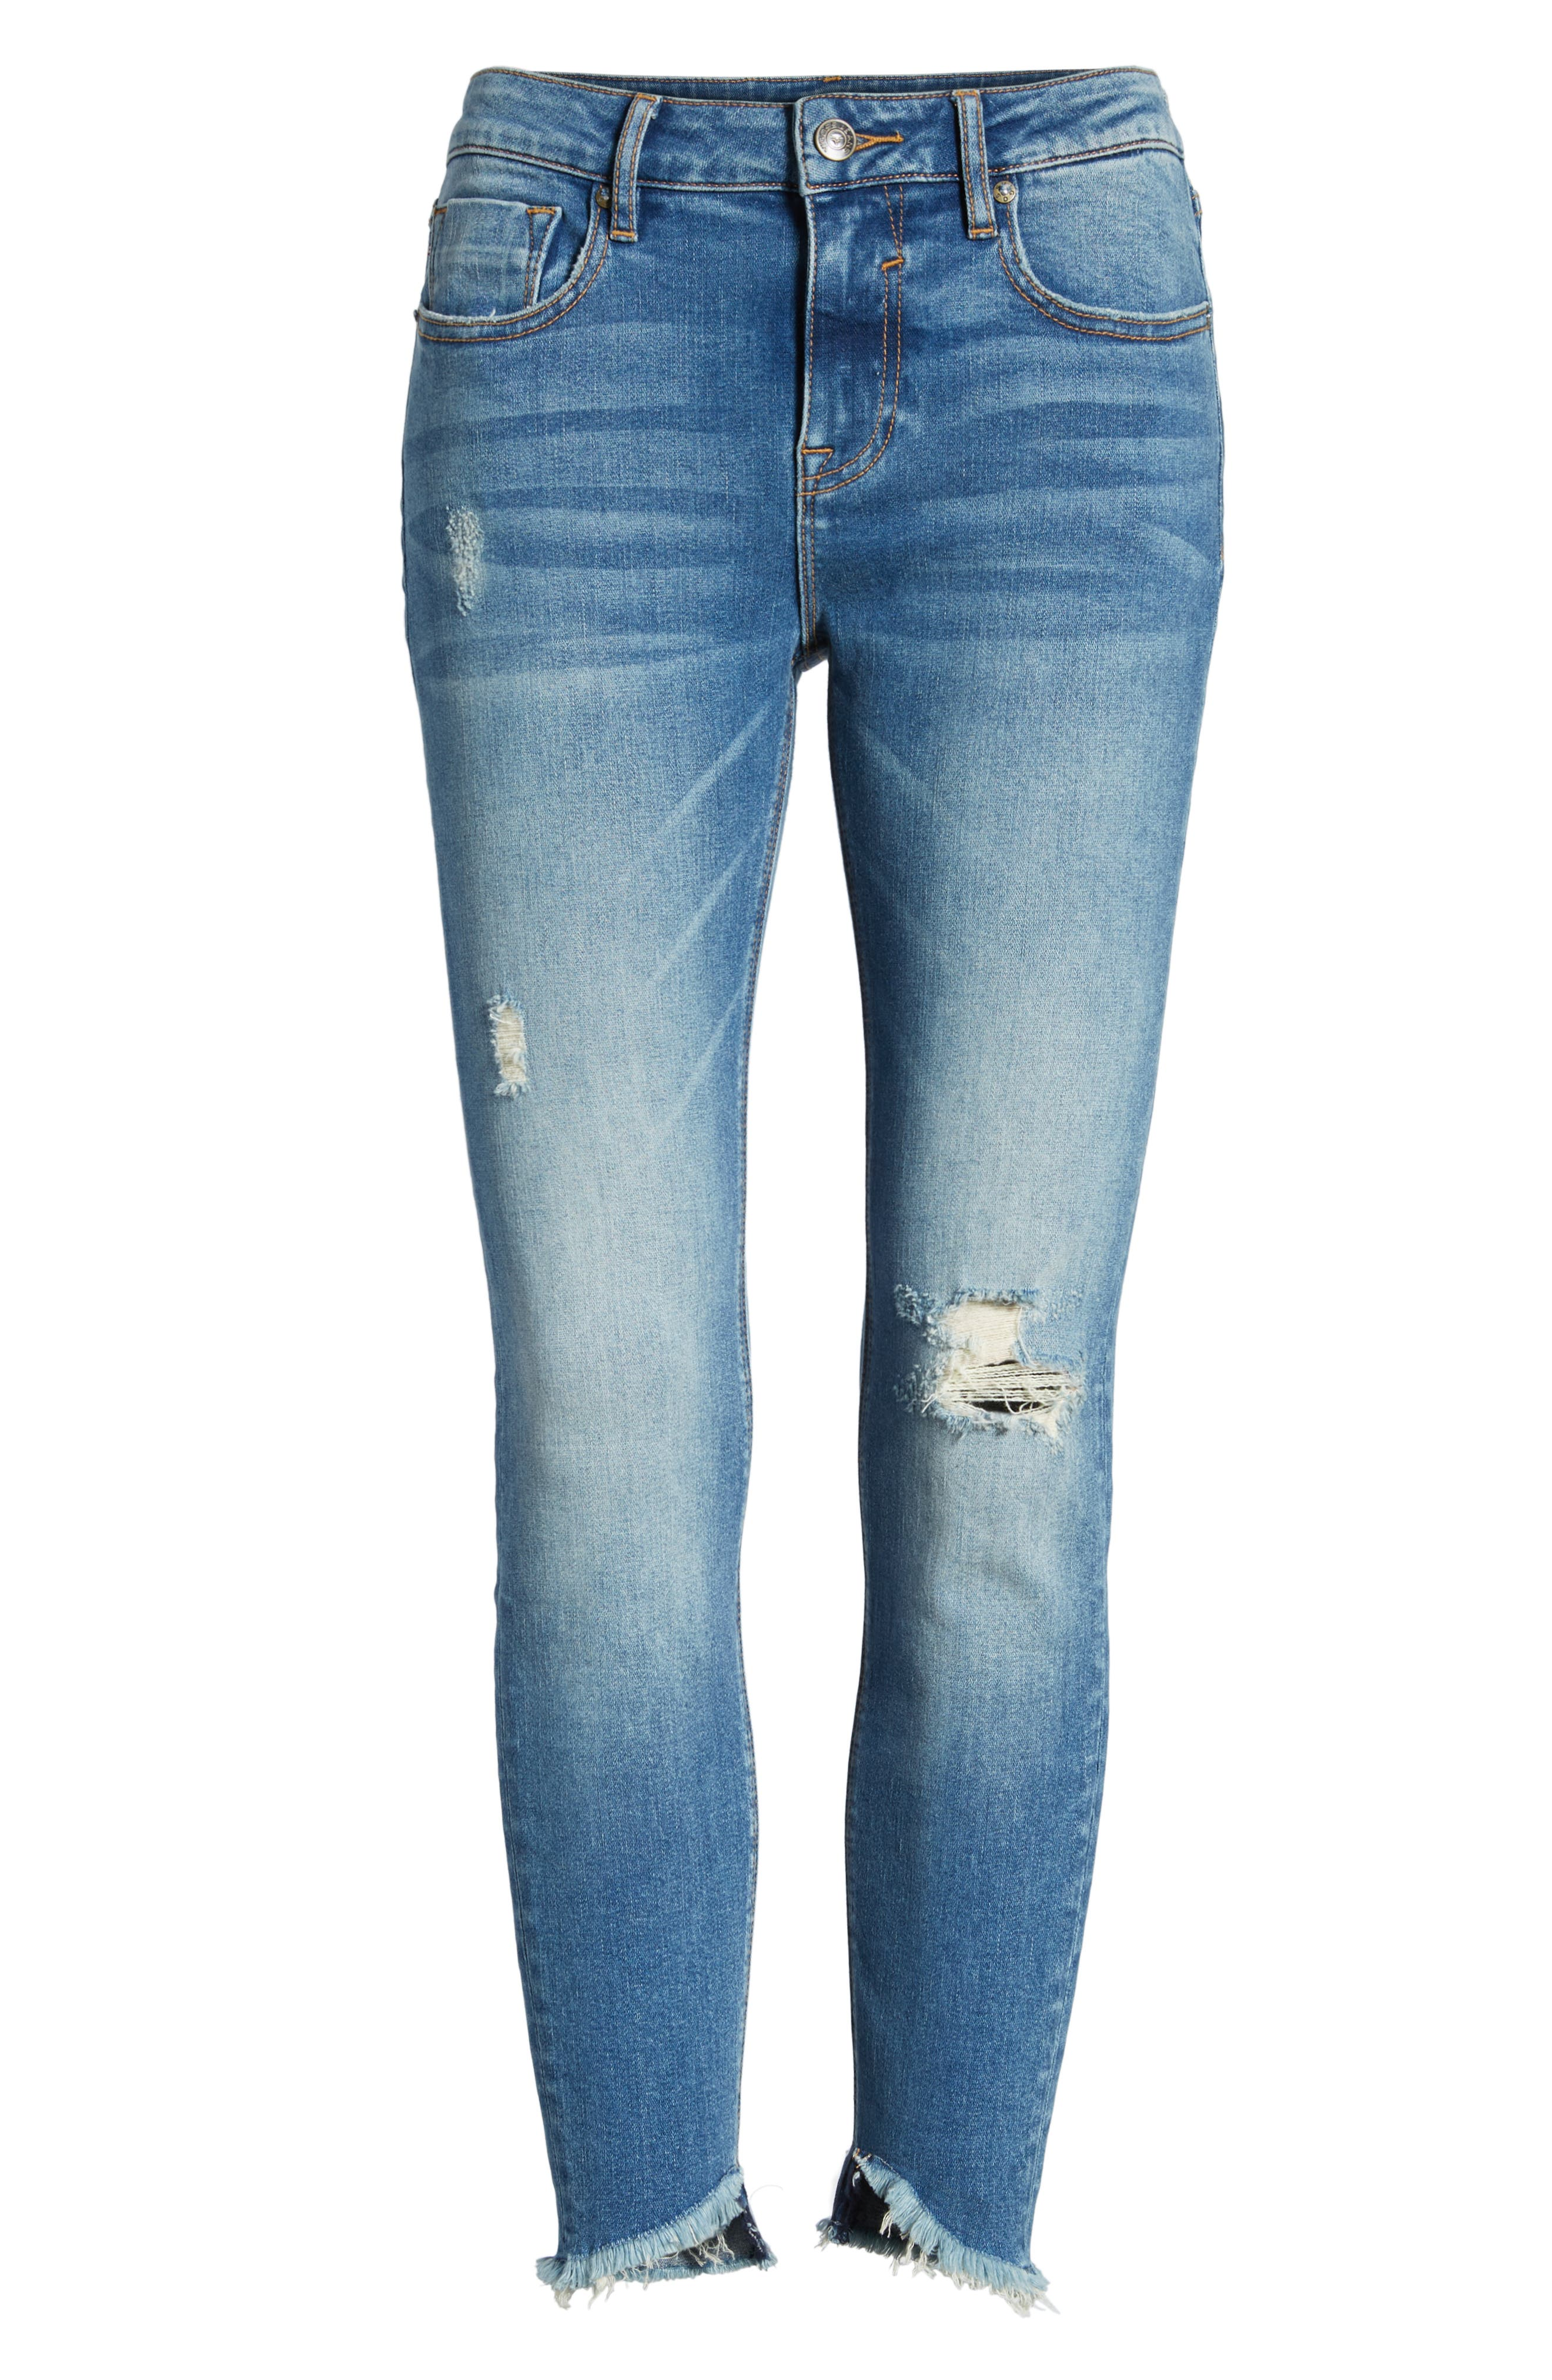 Marley Tulip Hem Ankle Skinny Jeans,                             Alternate thumbnail 7, color,                             400